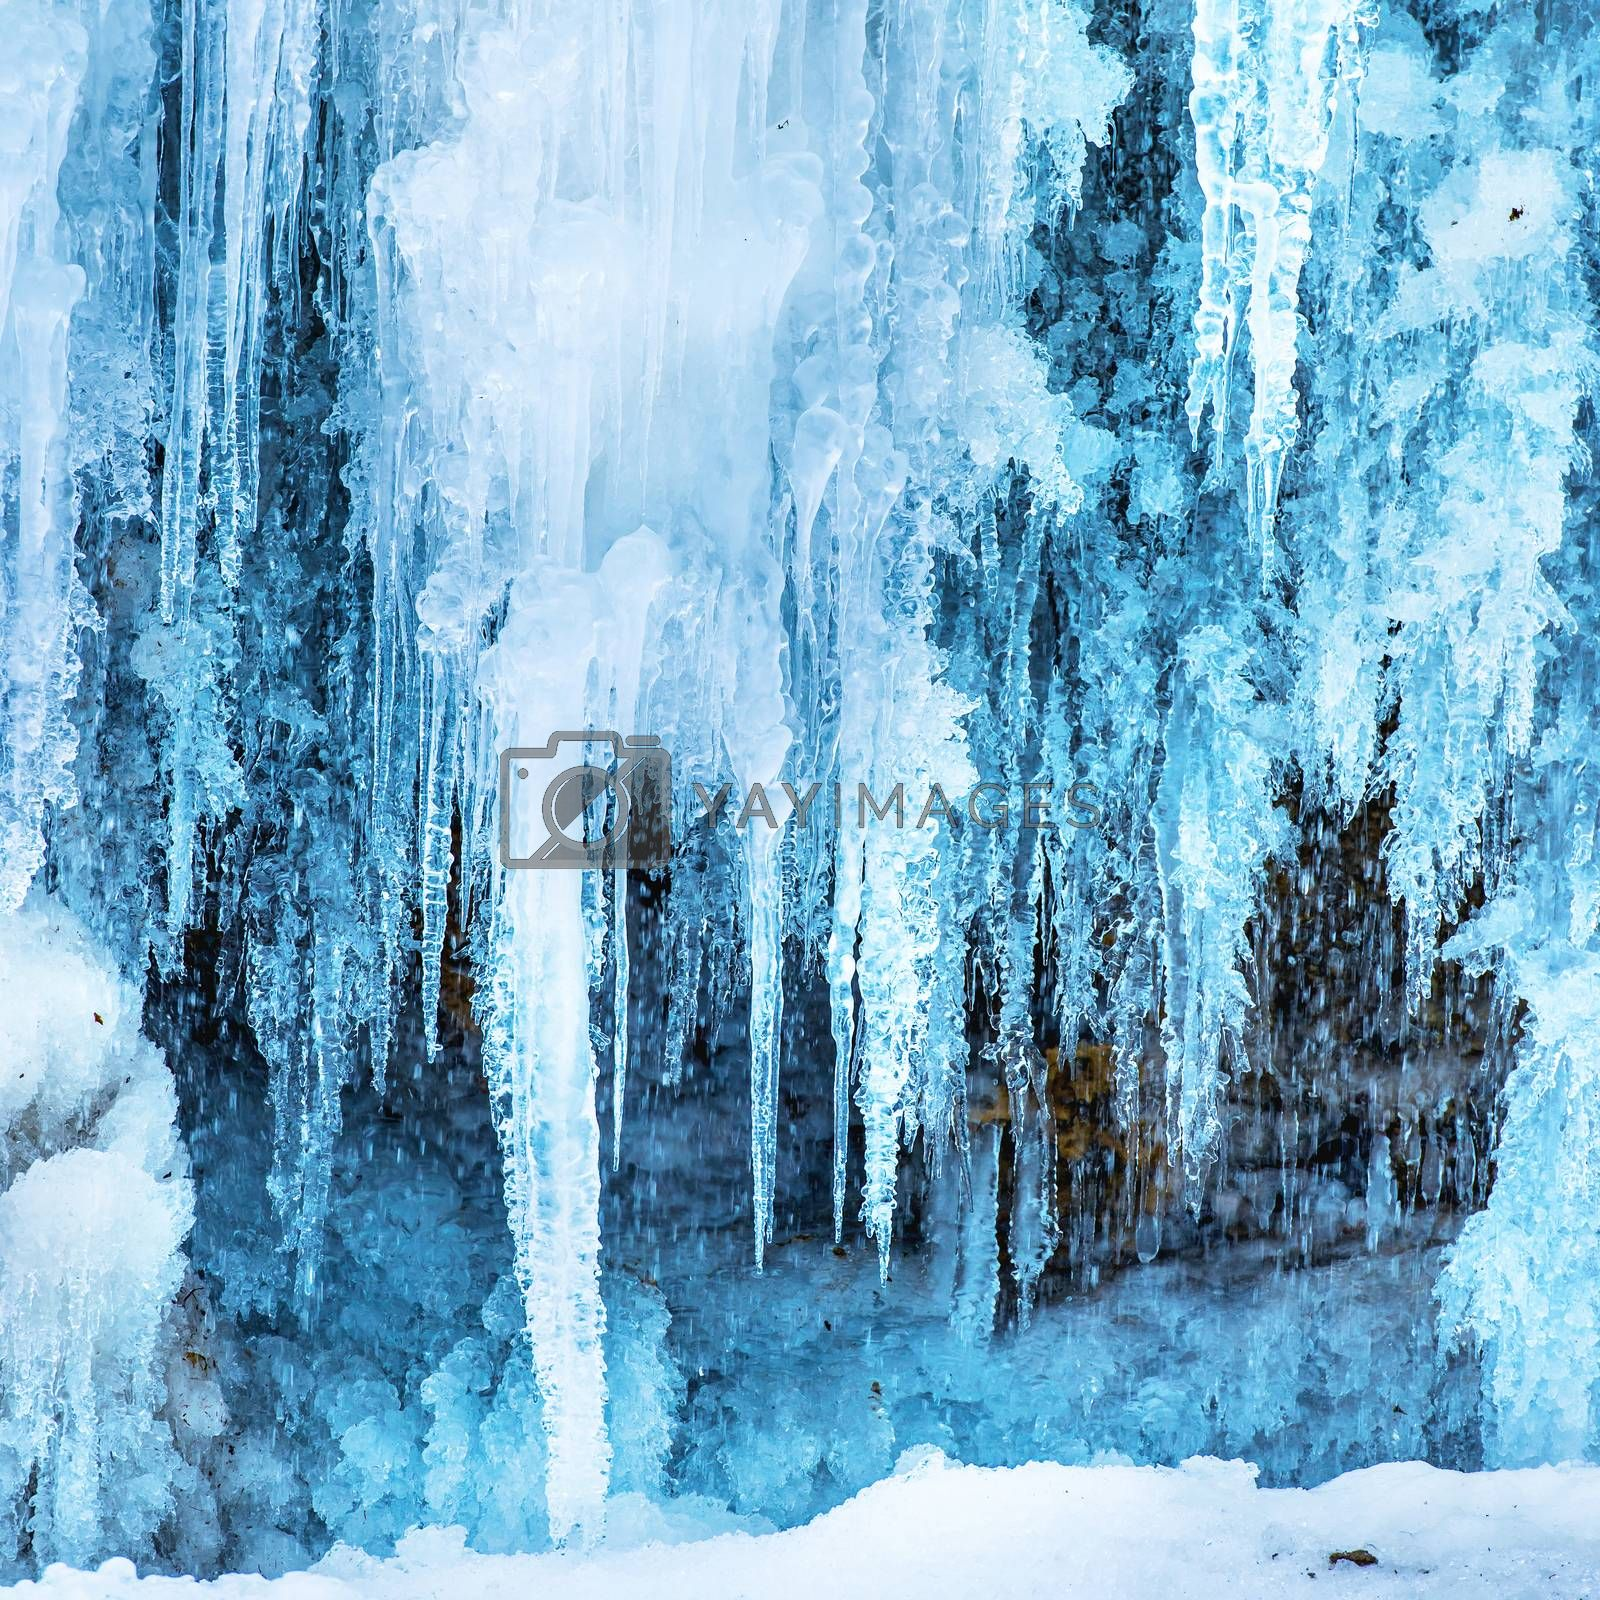 Frozen ice waterfall of blue icicles on the rock